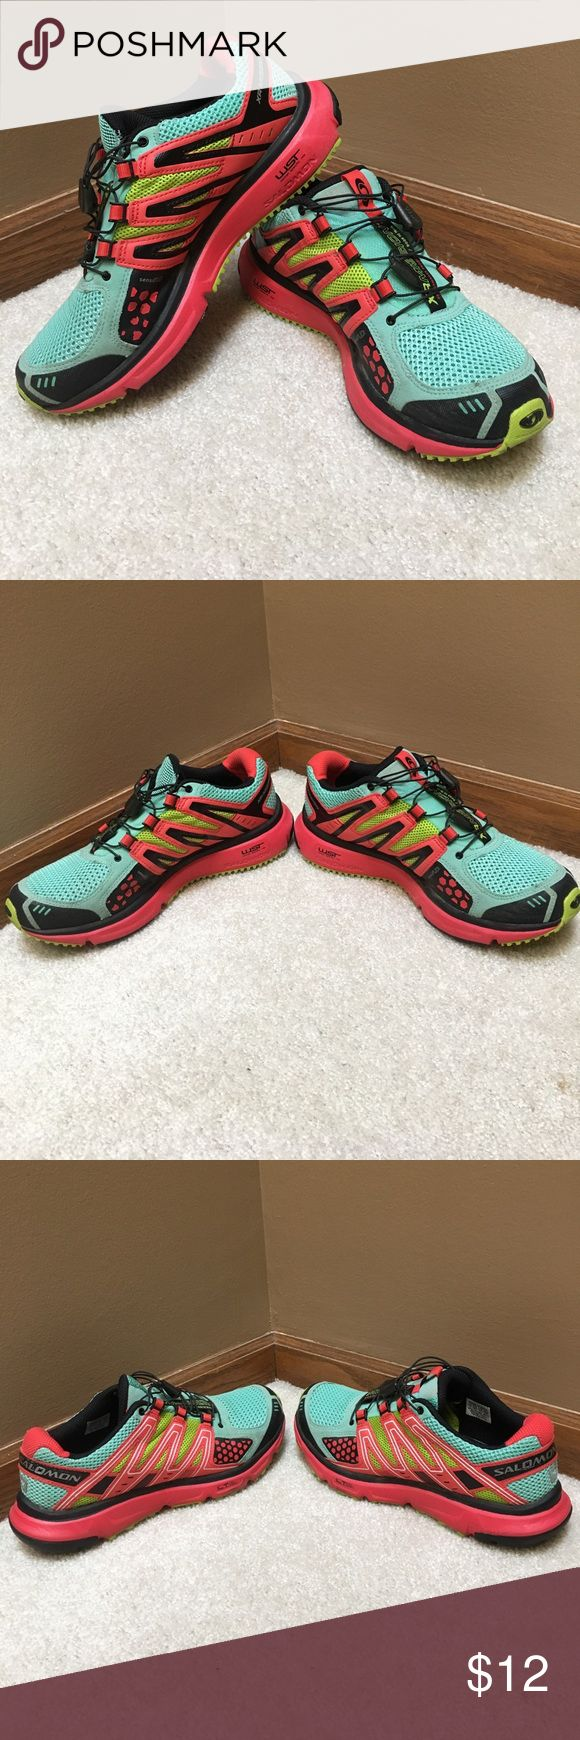 Salomon Trail Women's Athletic Shoe teal, black, salmon colored athletic shoe. lightly worn. with toggle laces. Salomon Shoes Athletic Shoes